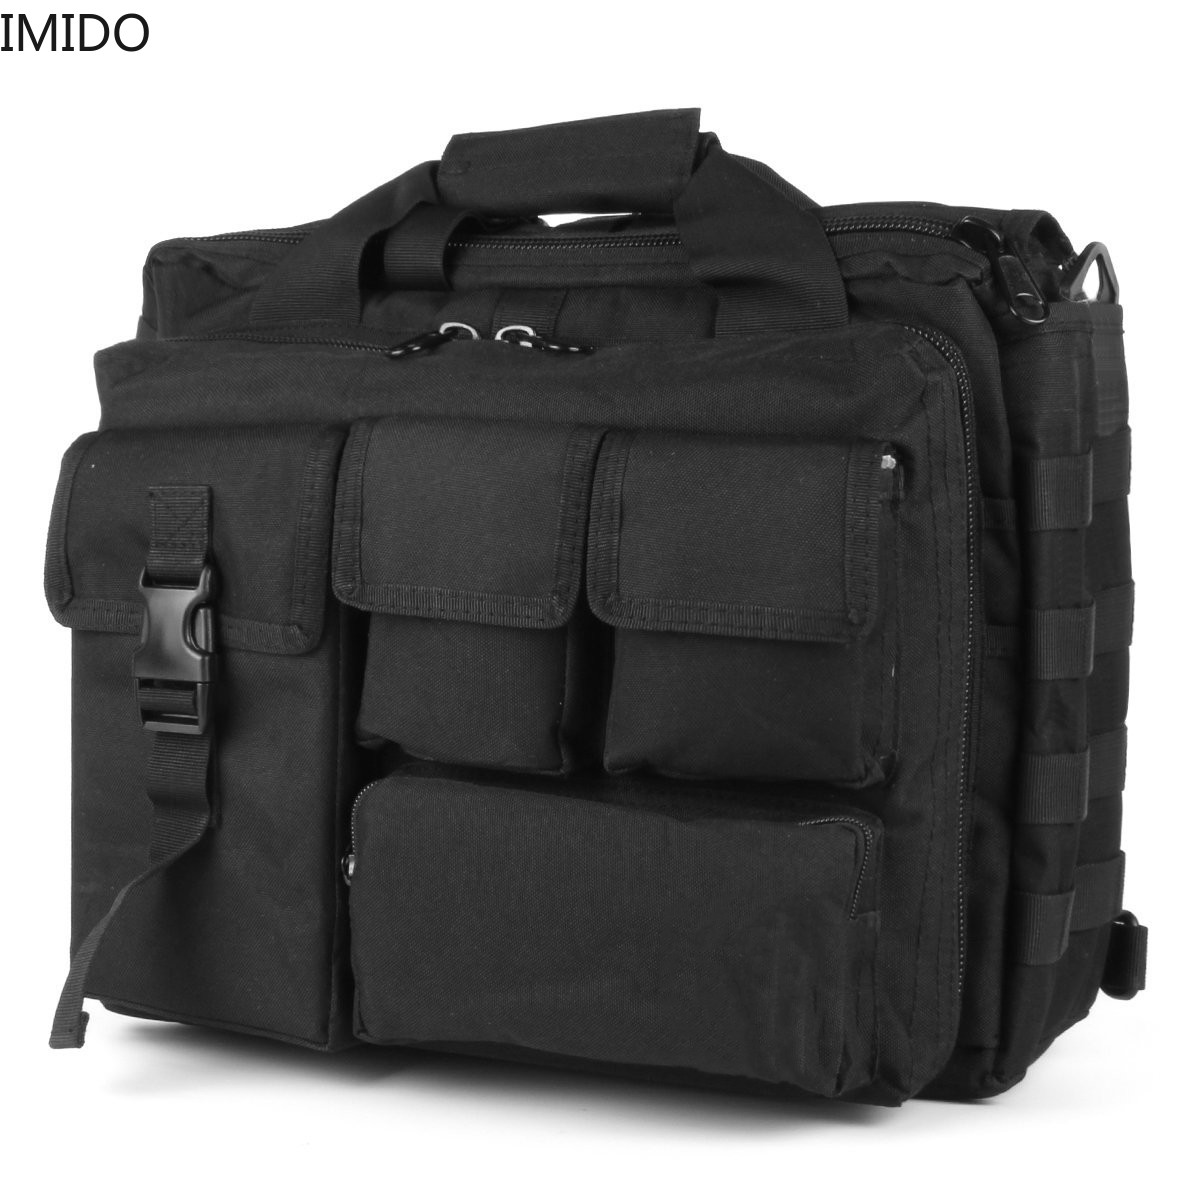 IMIDO Military Shoulder Bag Multifunction Tactical Army Sling Bags Messenger Laptop Handbags Outdoor Climbing Hiking Pouch Pack